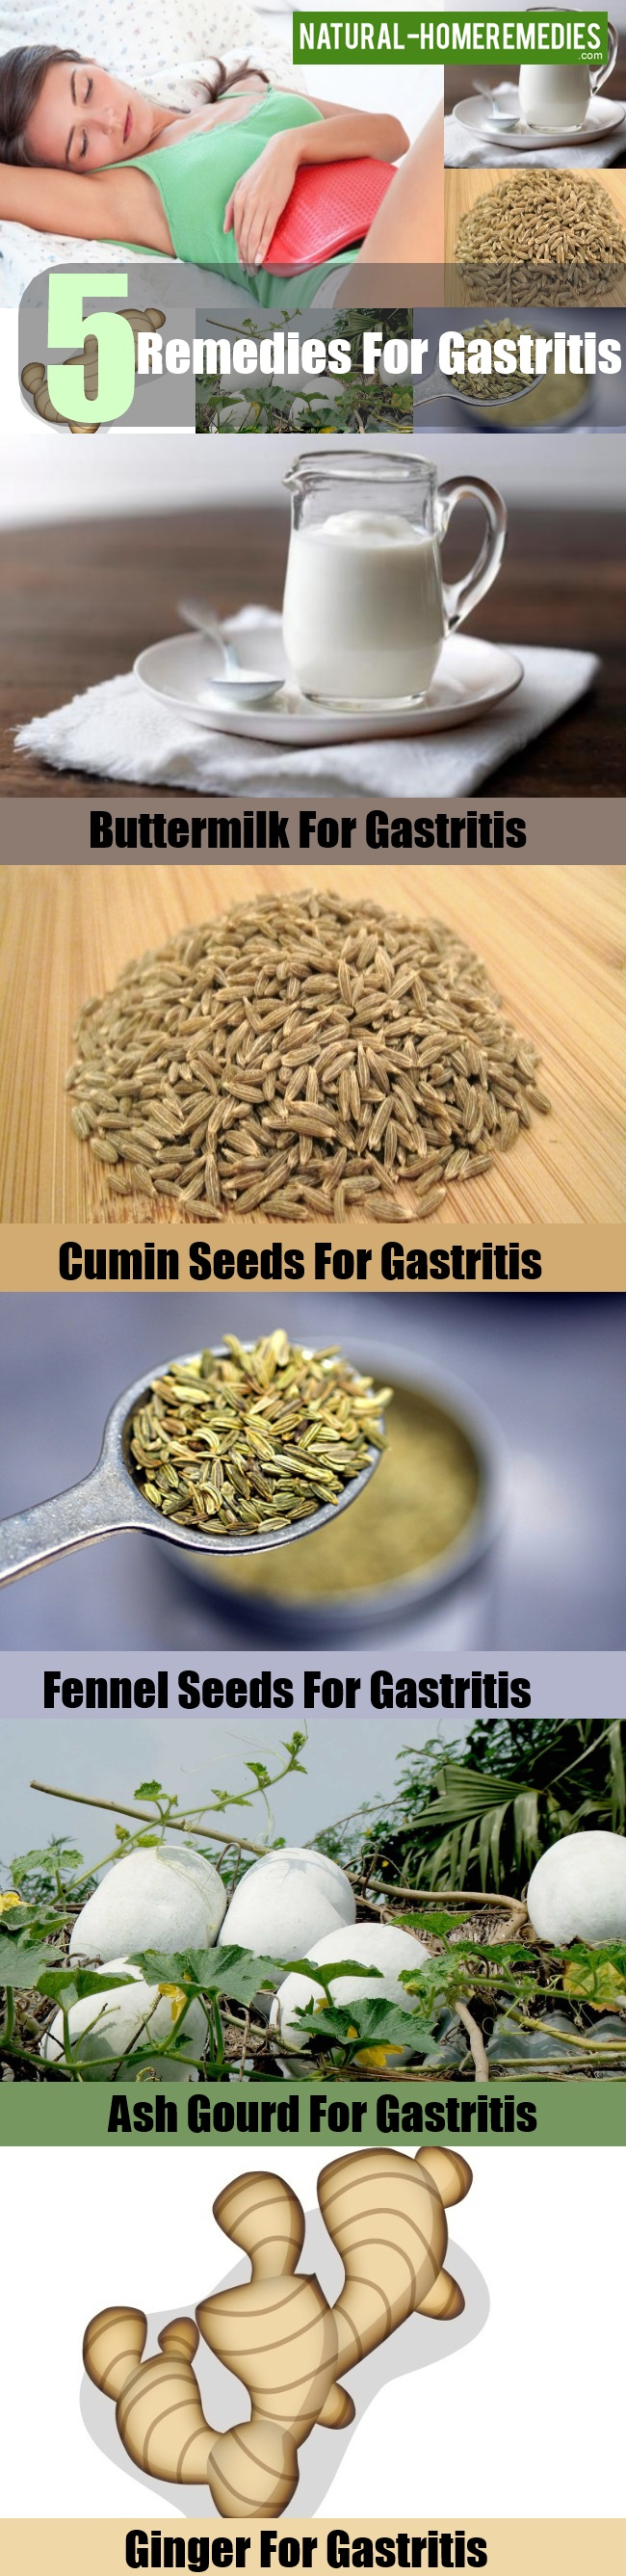 Remedies For Gastritis